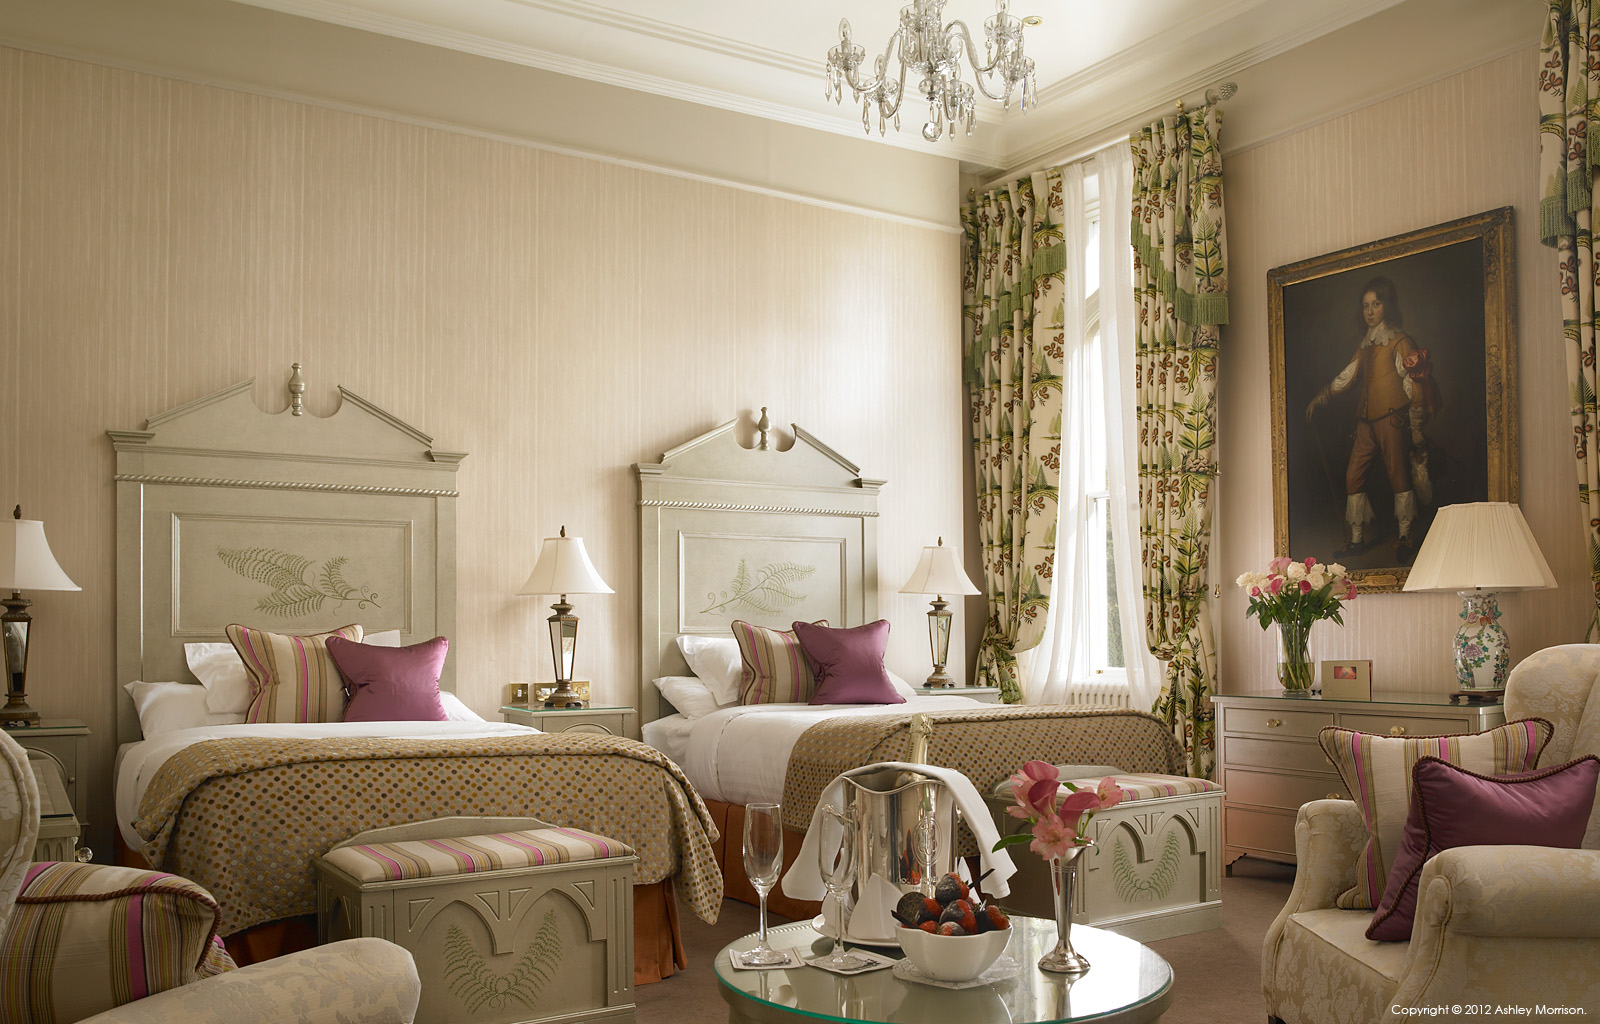 Bedroom suite at Dromoland Castle in County Clare by Ashley Morrison.